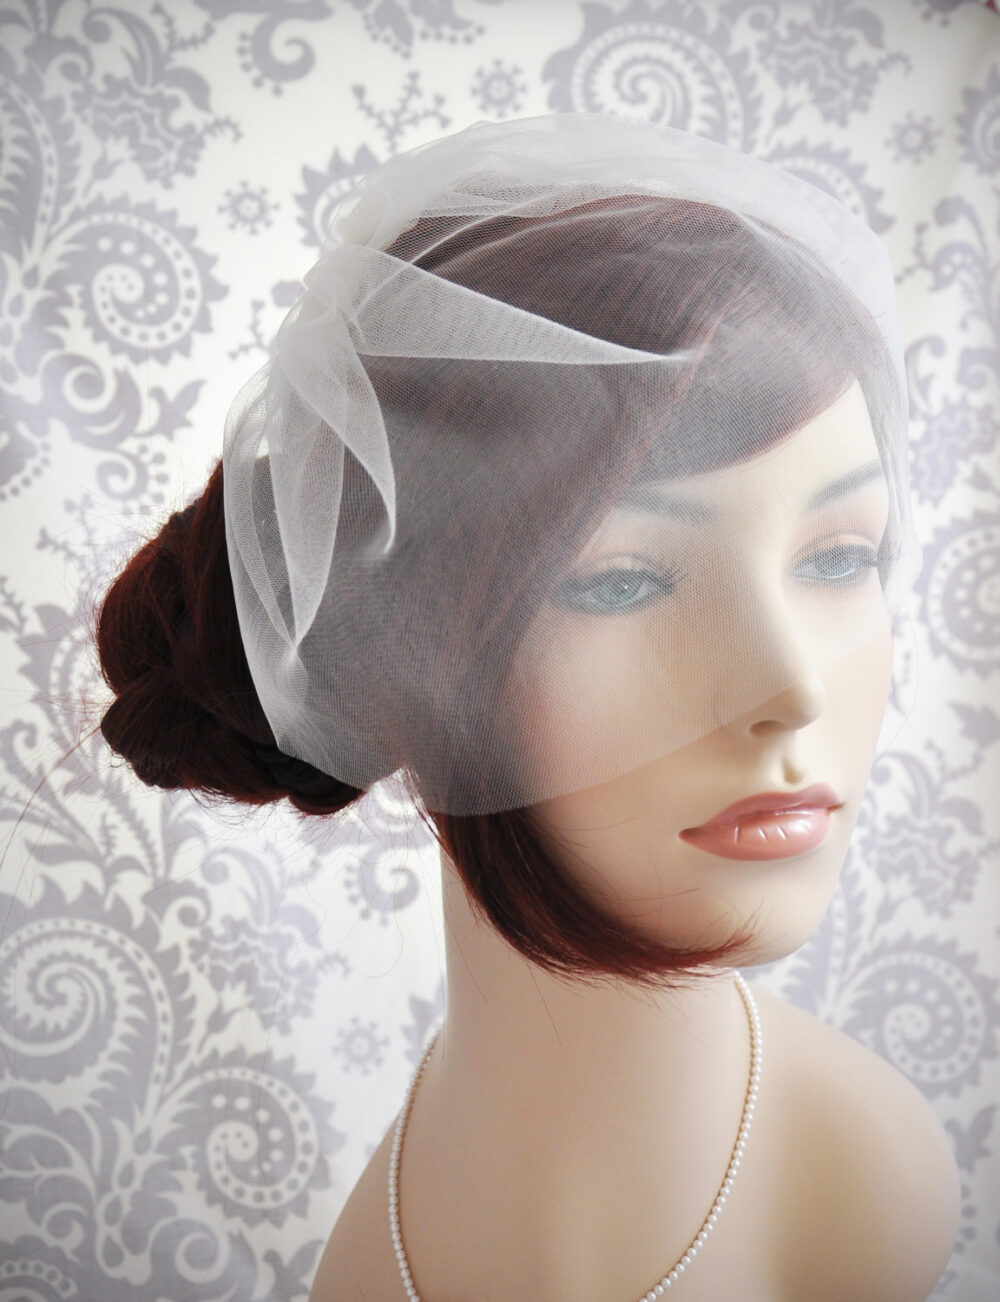 "Wedding Veil - Bridal Veil, Birdcage Ivory, Tulle Blusher White, Off-White, Champagne, Blush, 11"" 104Bc"